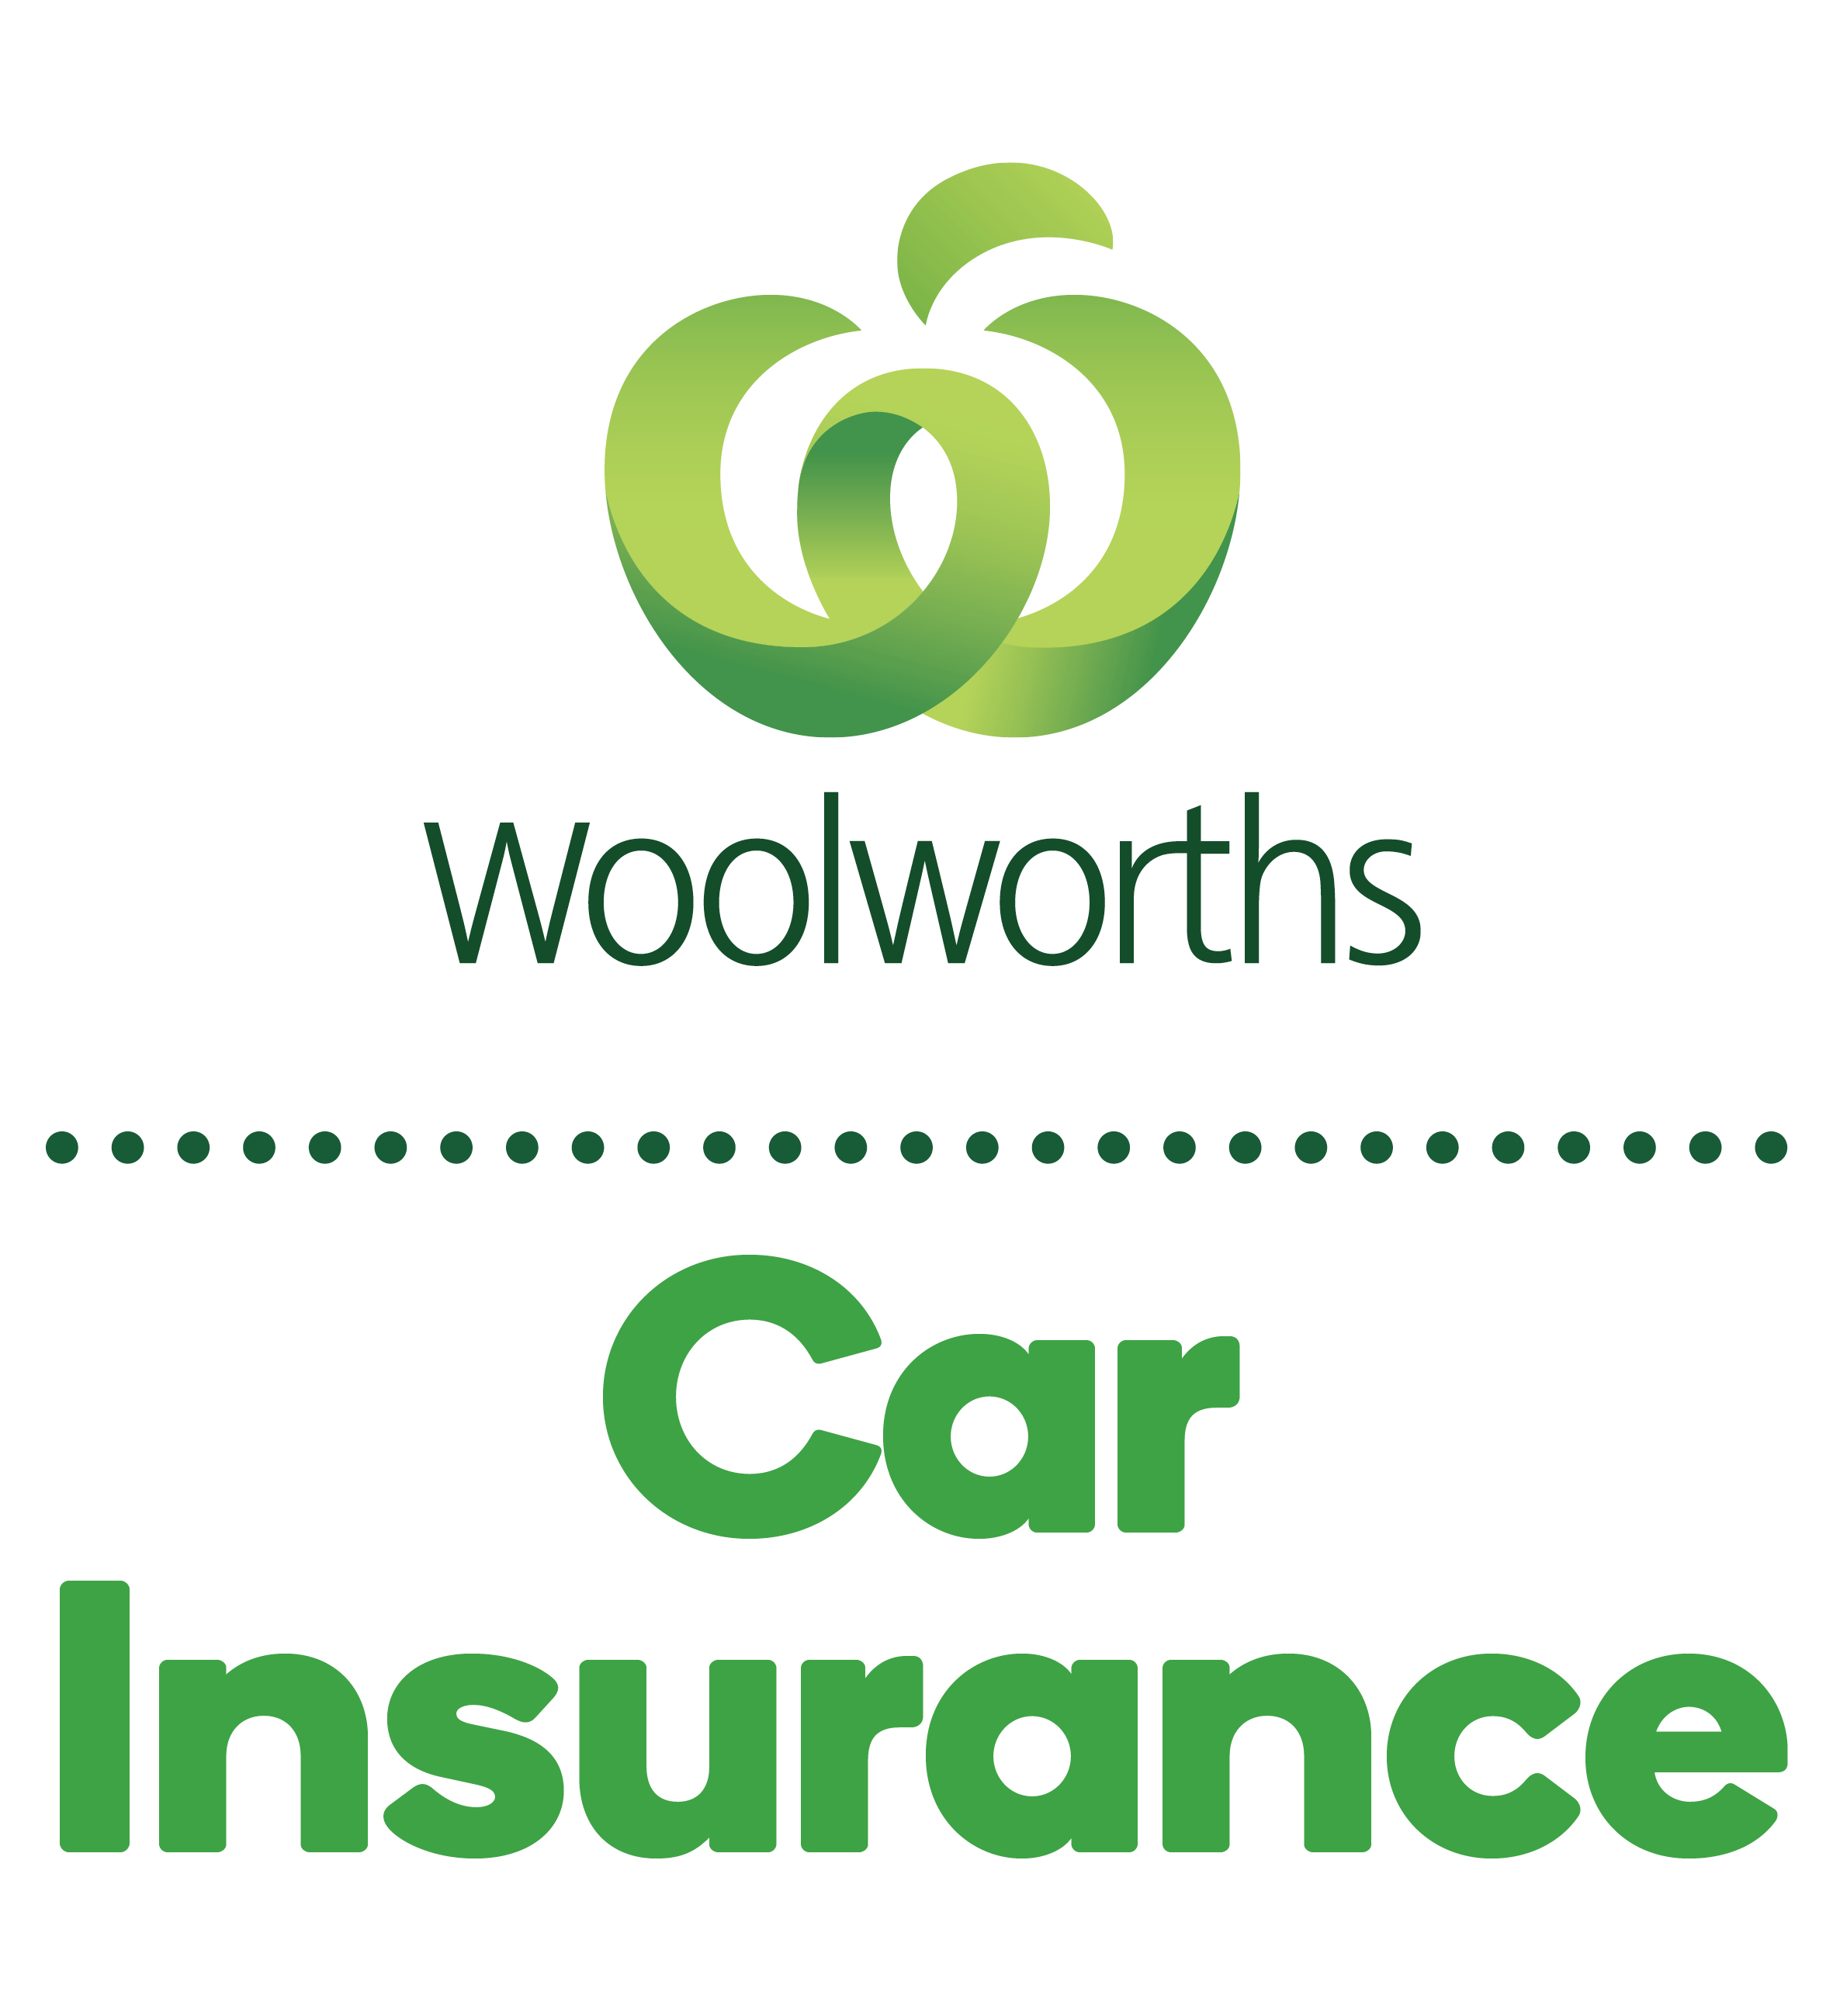 Pet Insurance Companies >> Woolworths Car Insurance Reviews - ProductReview.com.au